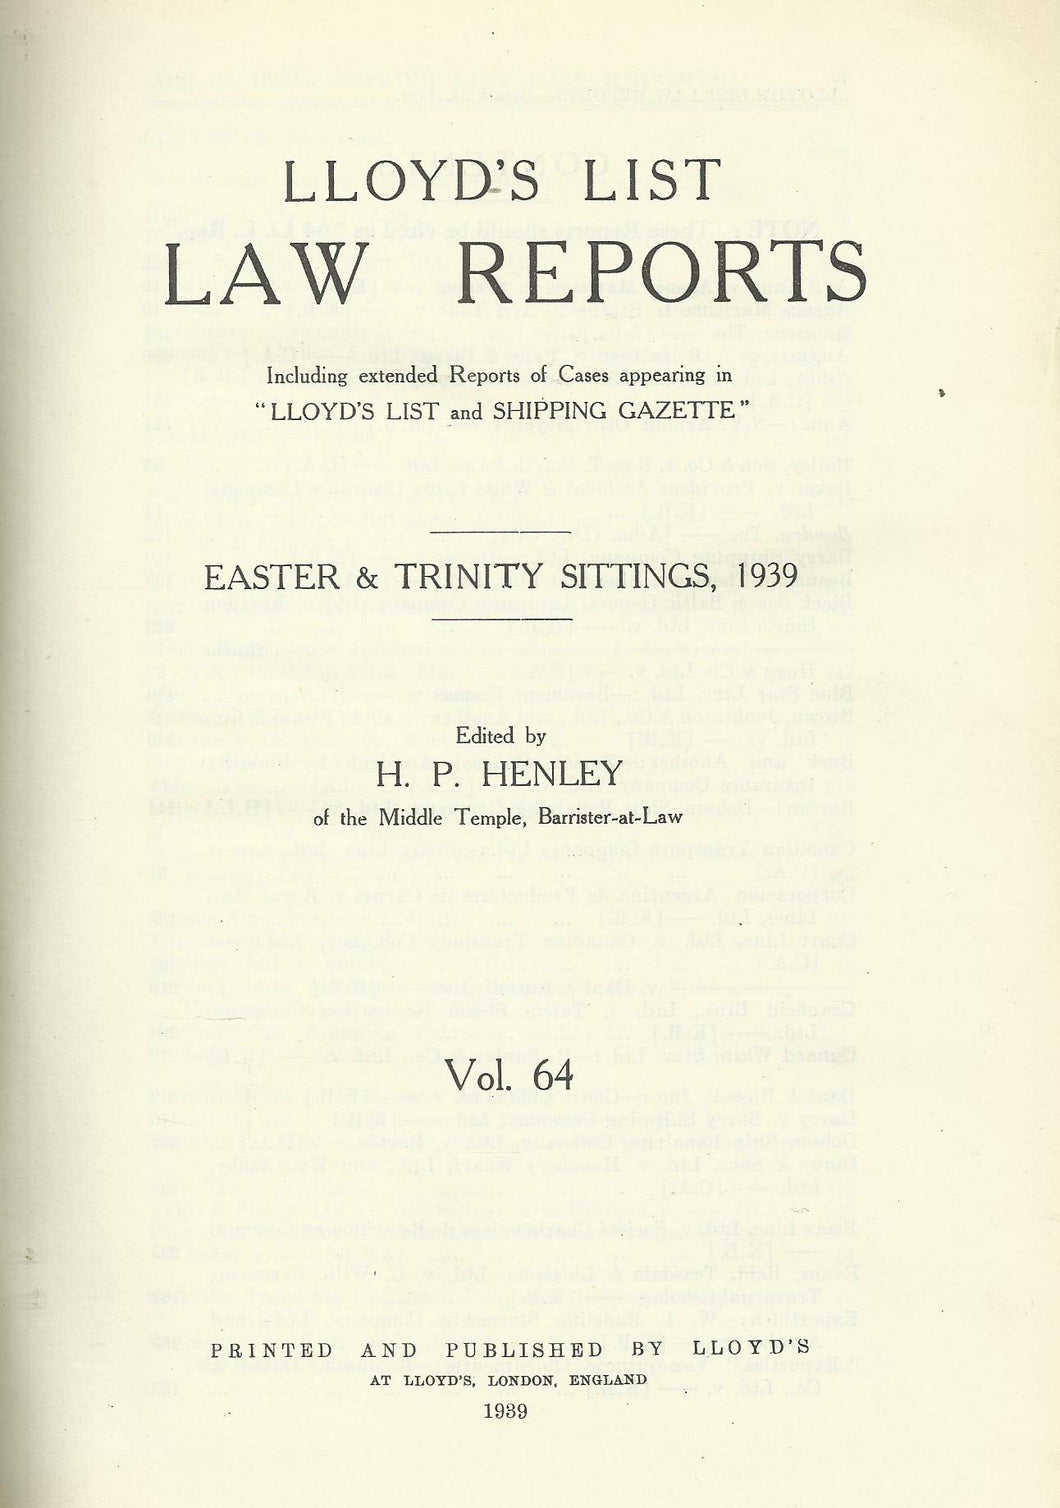 Lloyd's List Law Reports - Volume 64, Hilary Sittings, 1939